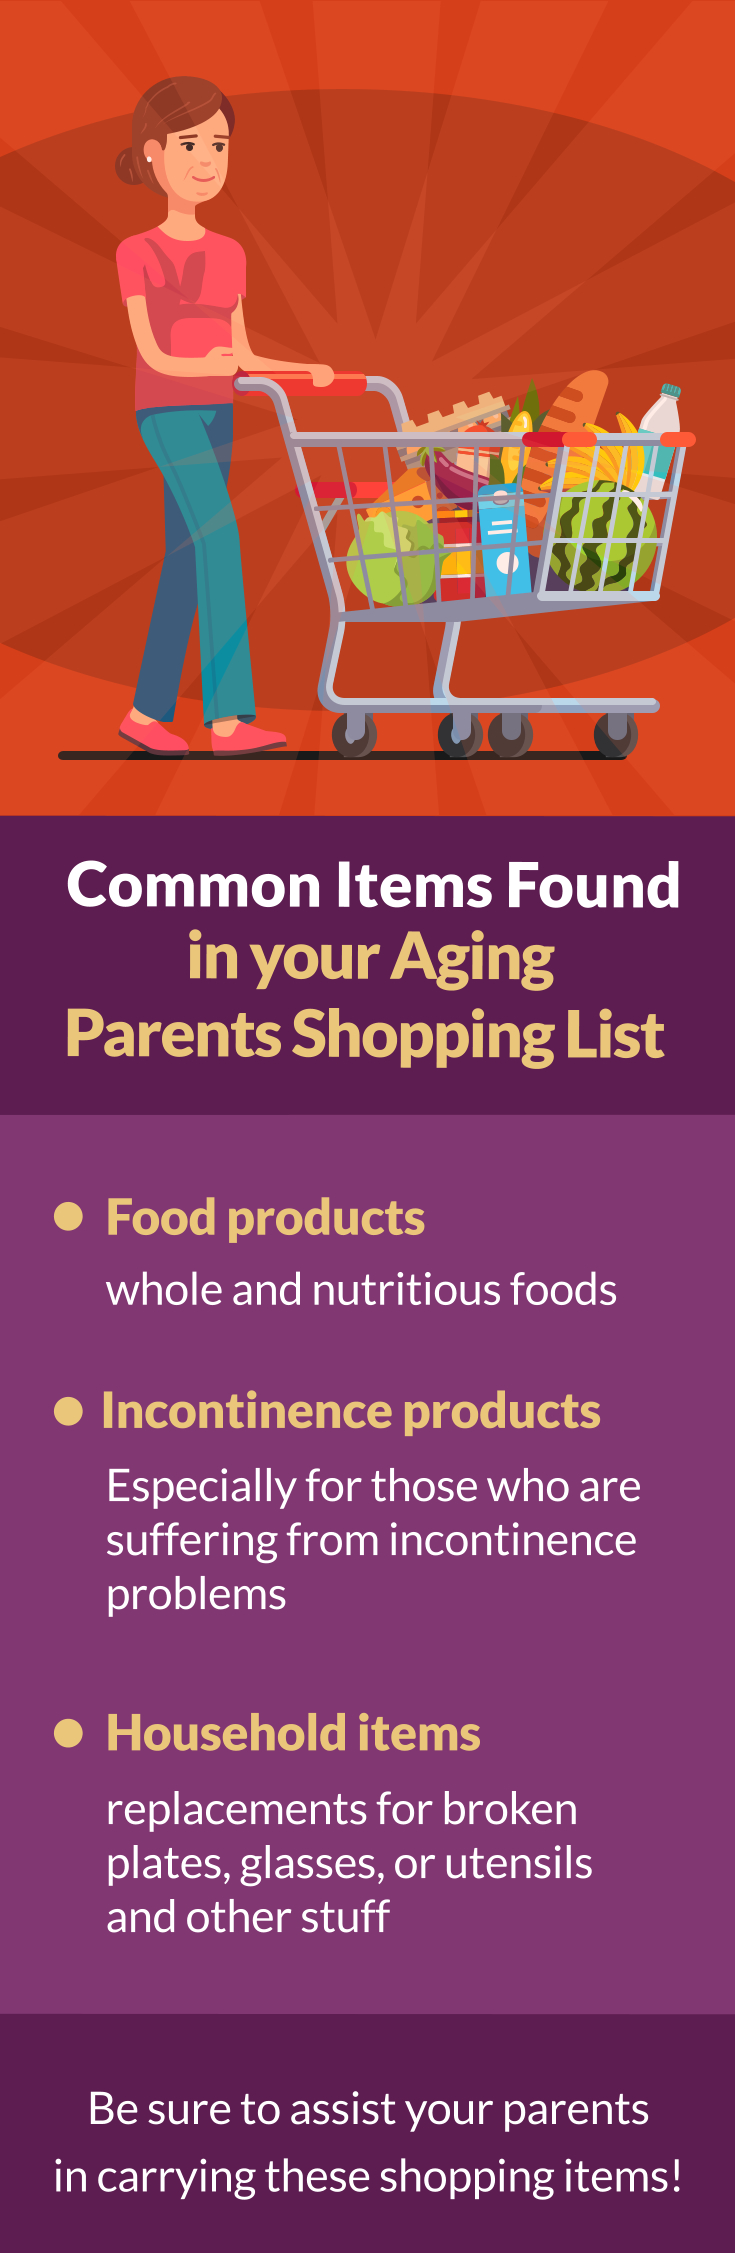 Common Items Found in your Aging Parents Shopping List A